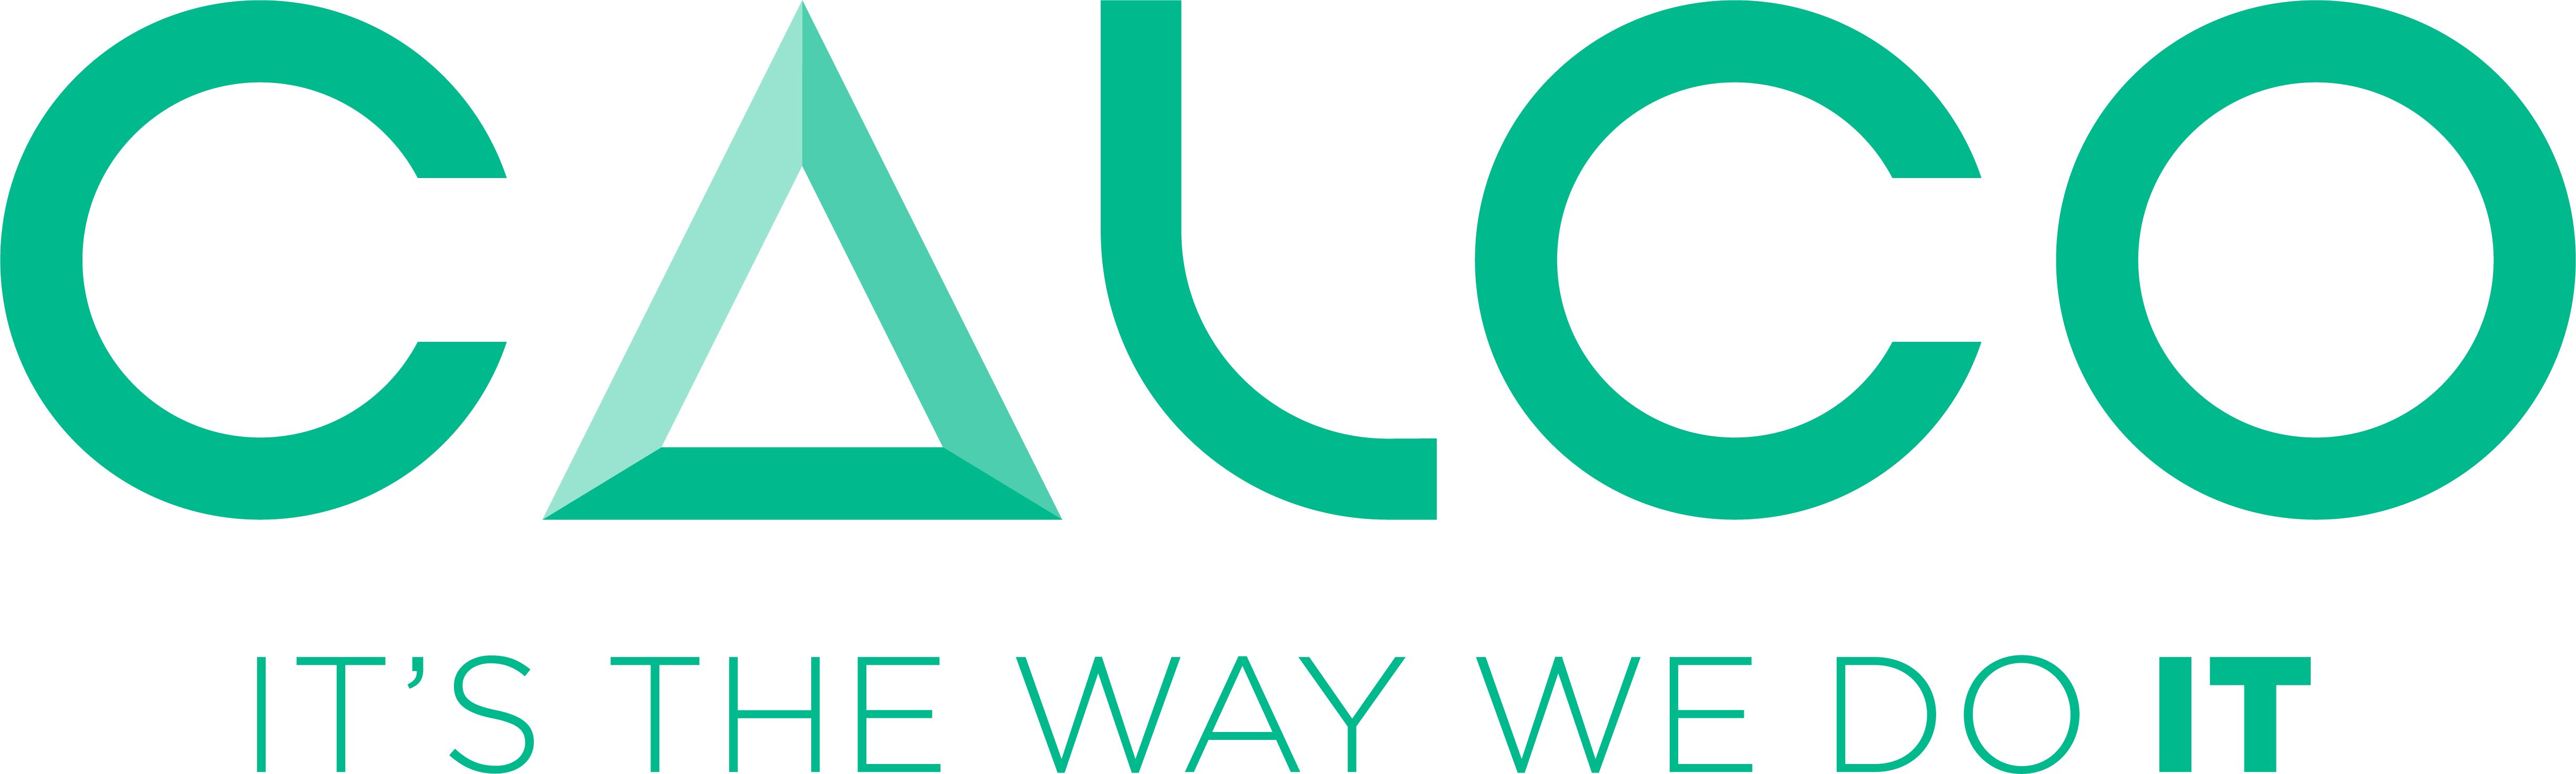 Logo Calco GmbH - it's the way we do it